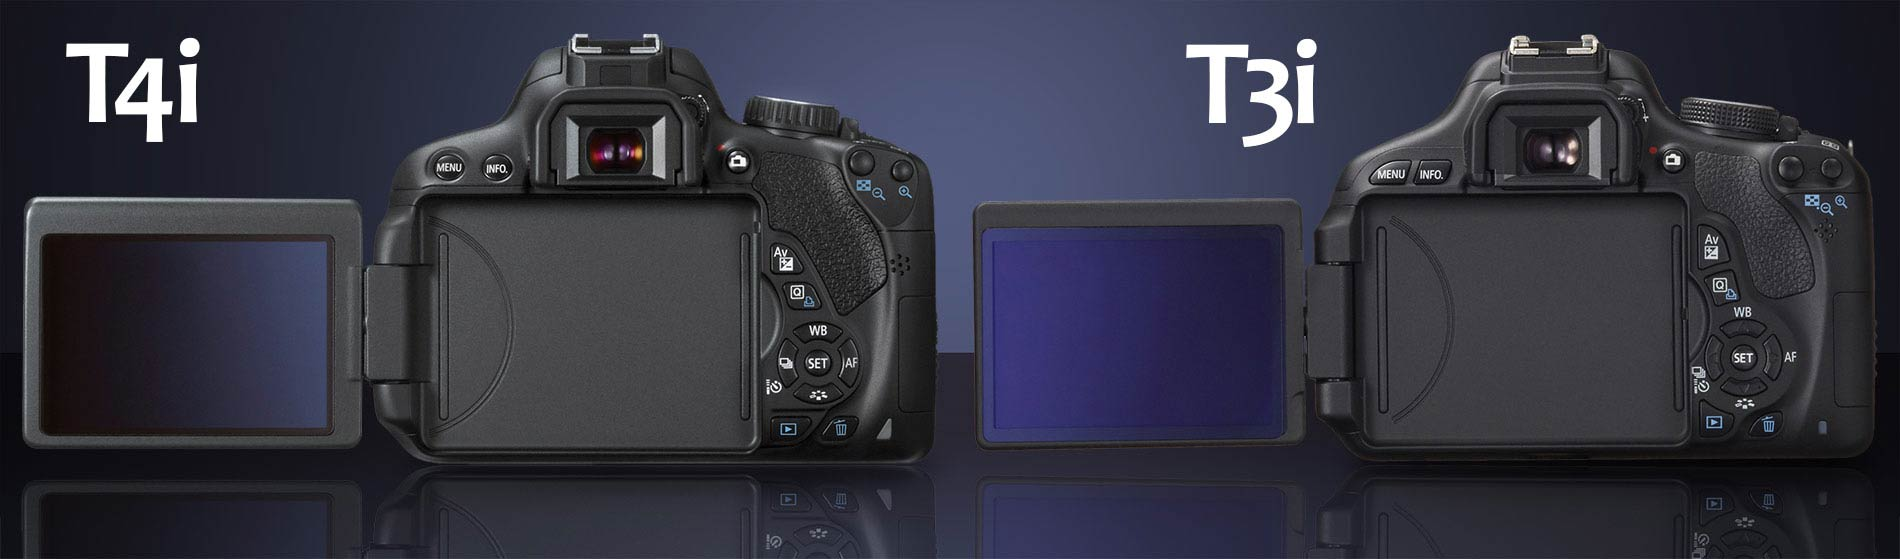 Canon T4i vs T3i : What's the Difference? – Light And Matter